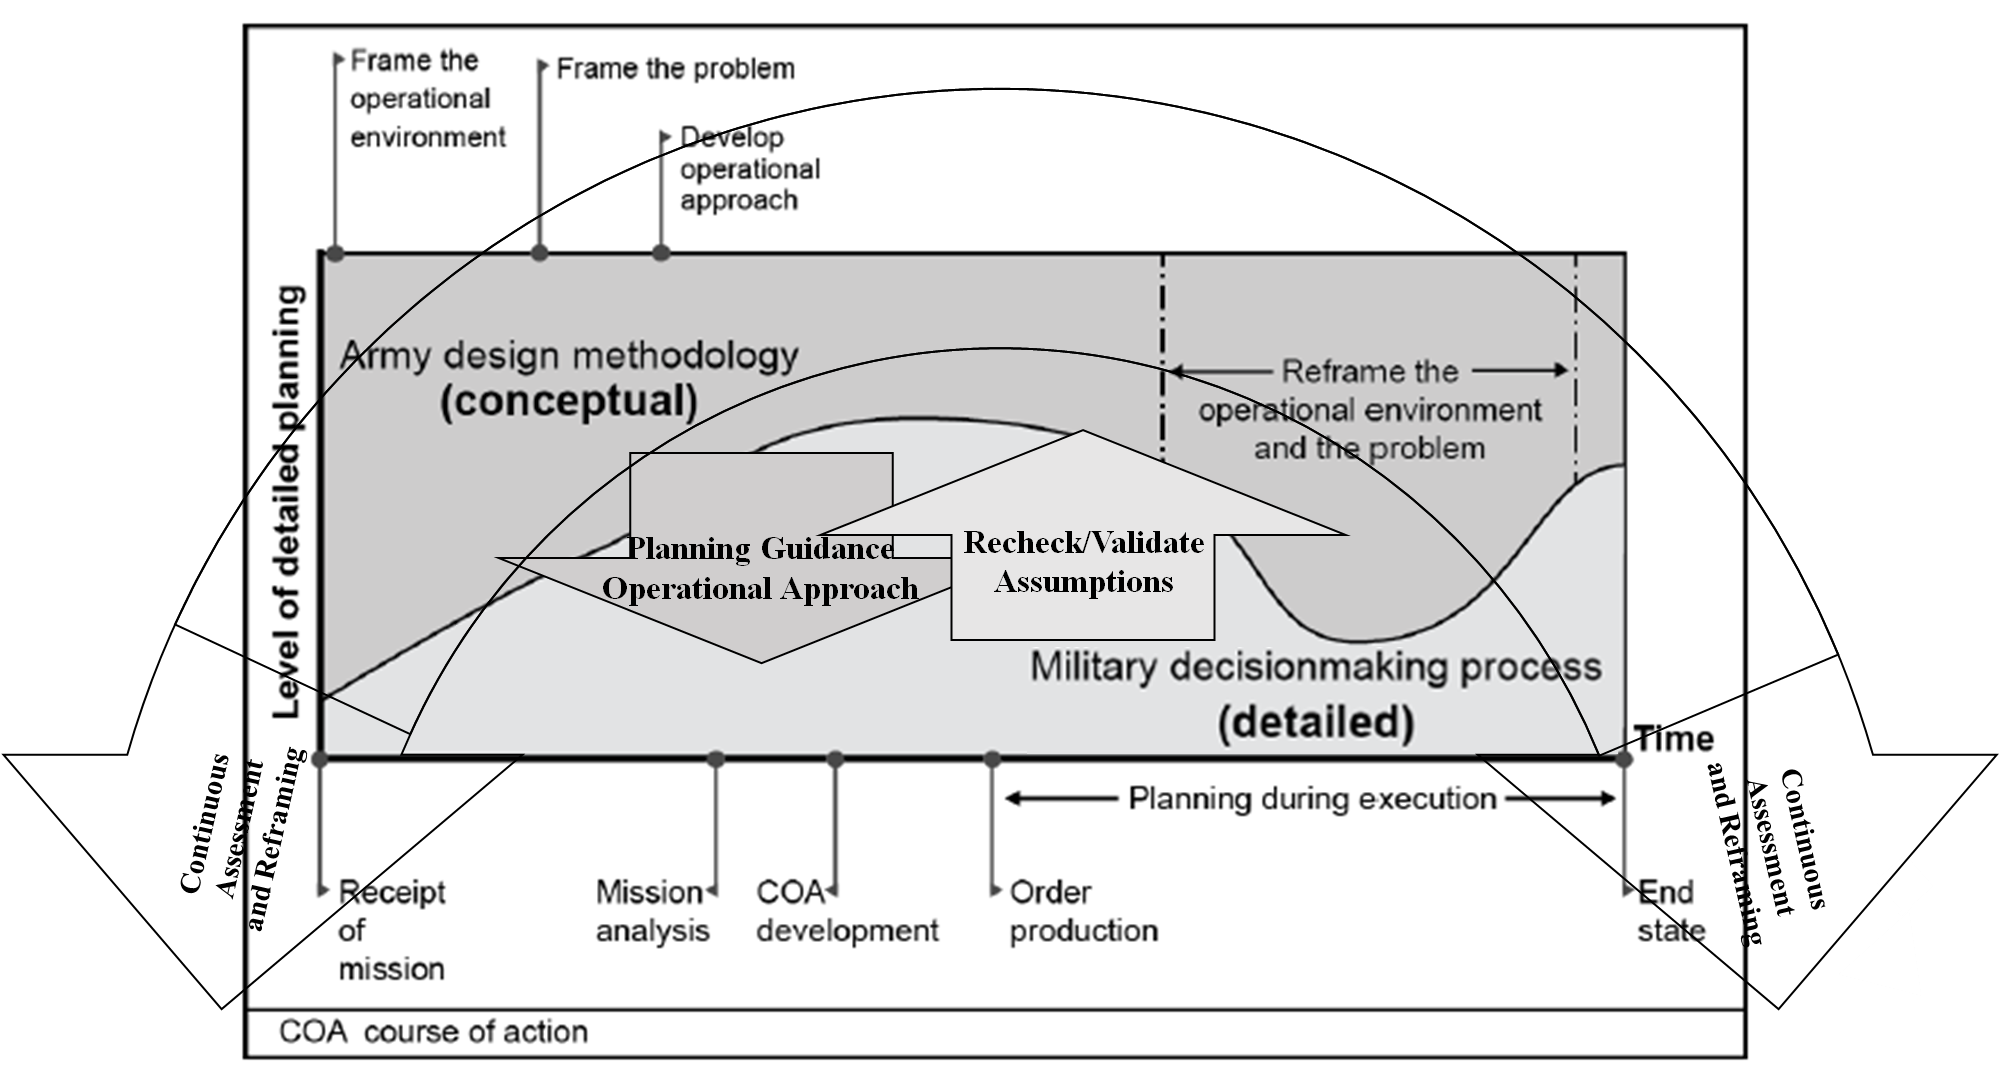 Integrated Planning: Conceptual and Detailed Planning. Army Techniques Publication (ATP) 5-0.1, Army Design Methodology (Washington, DC: Department of the Army, 2015), 2-2.